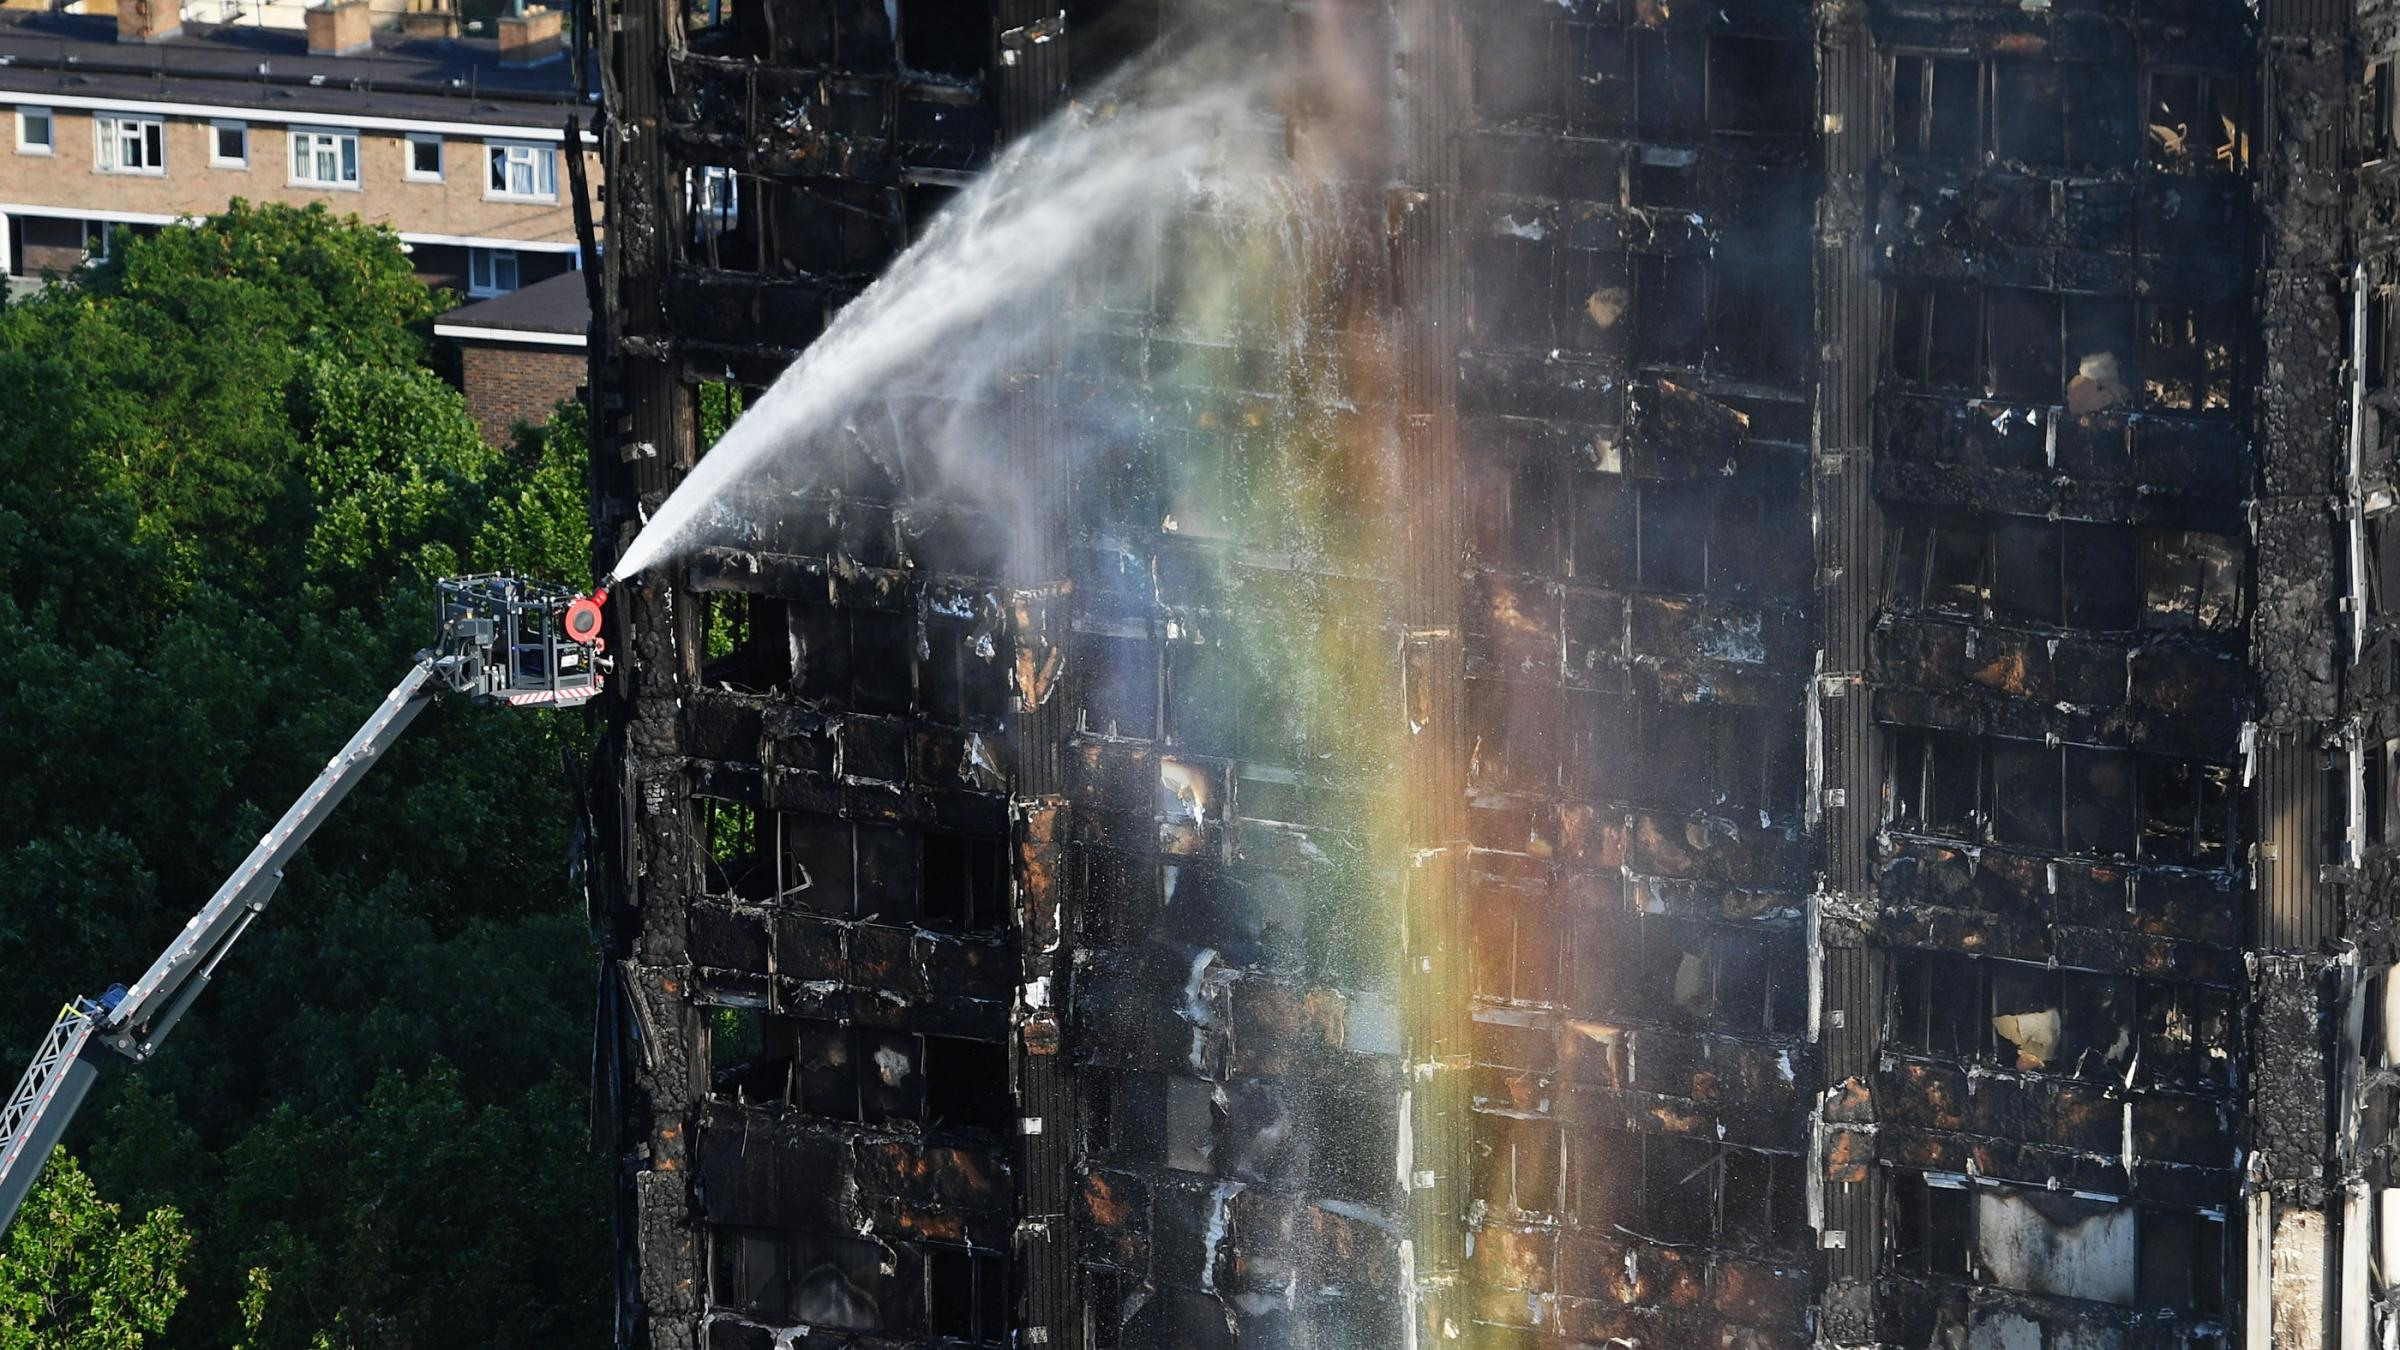 Planning documents for tower in fatal fire omitted safety barriers